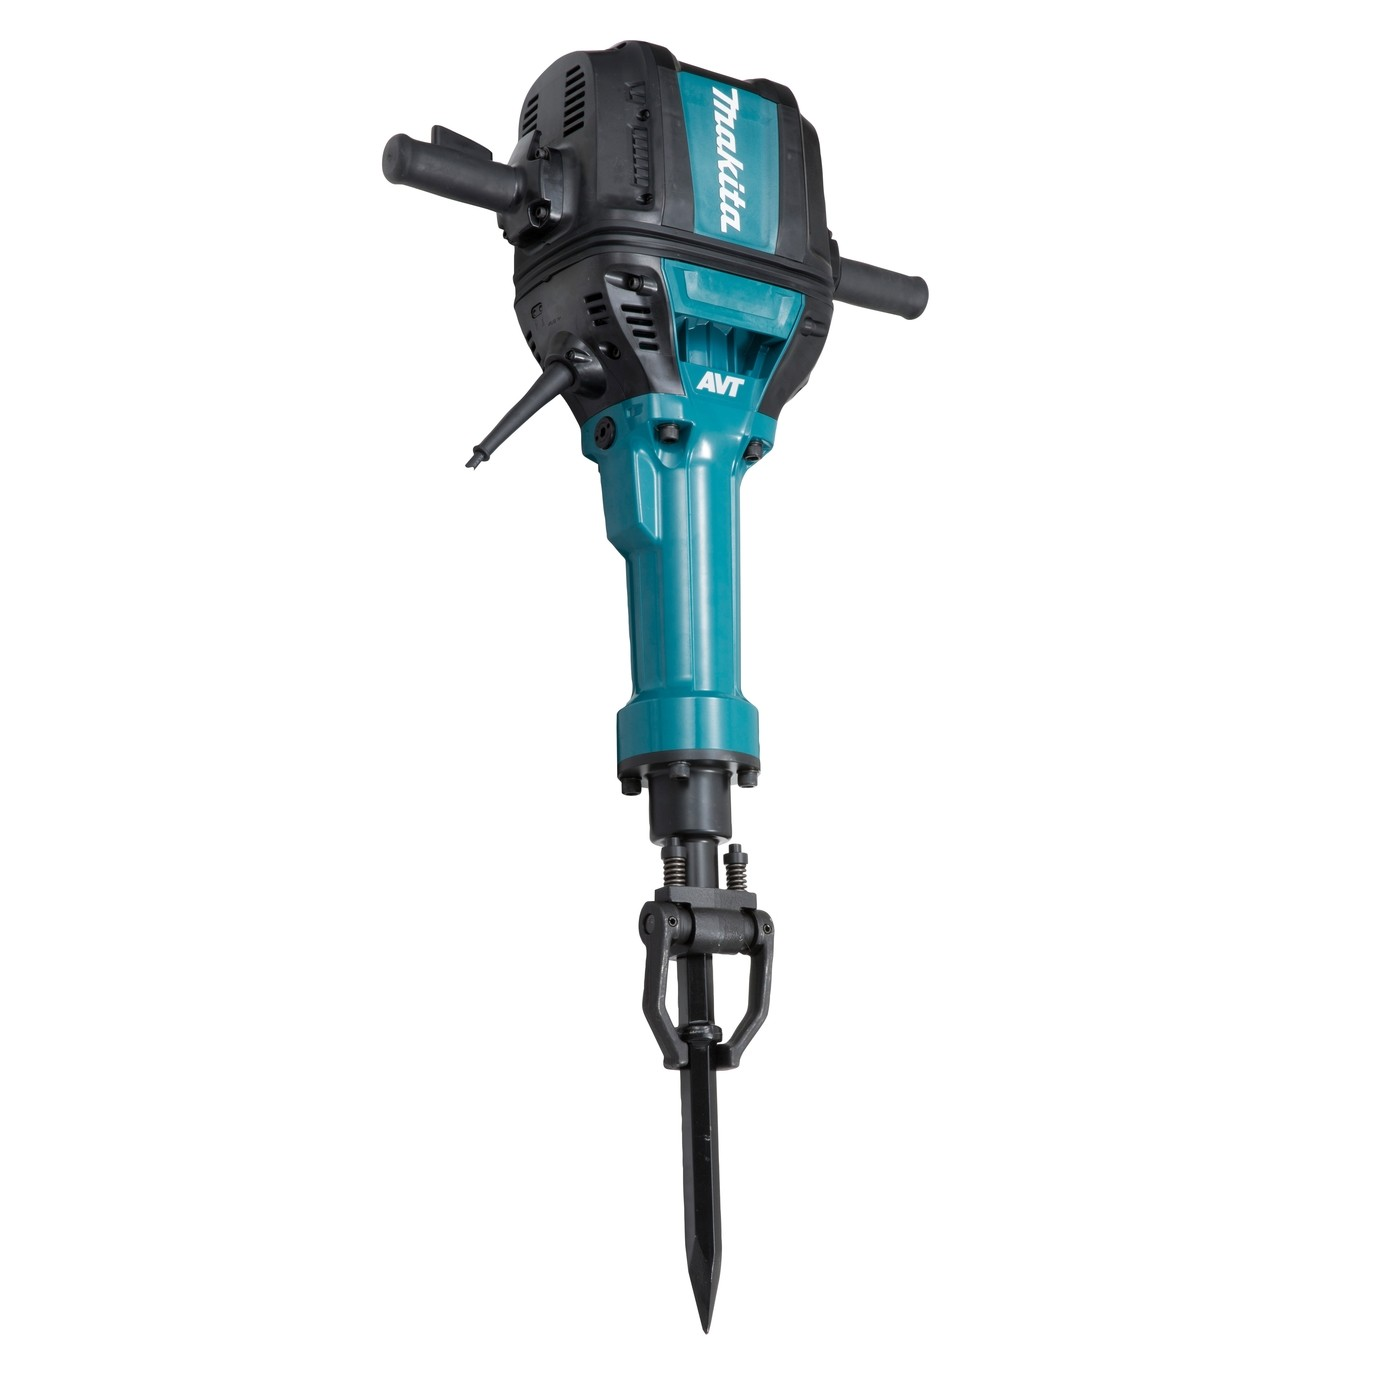 Makita HM1812 Electric Breaker 240v